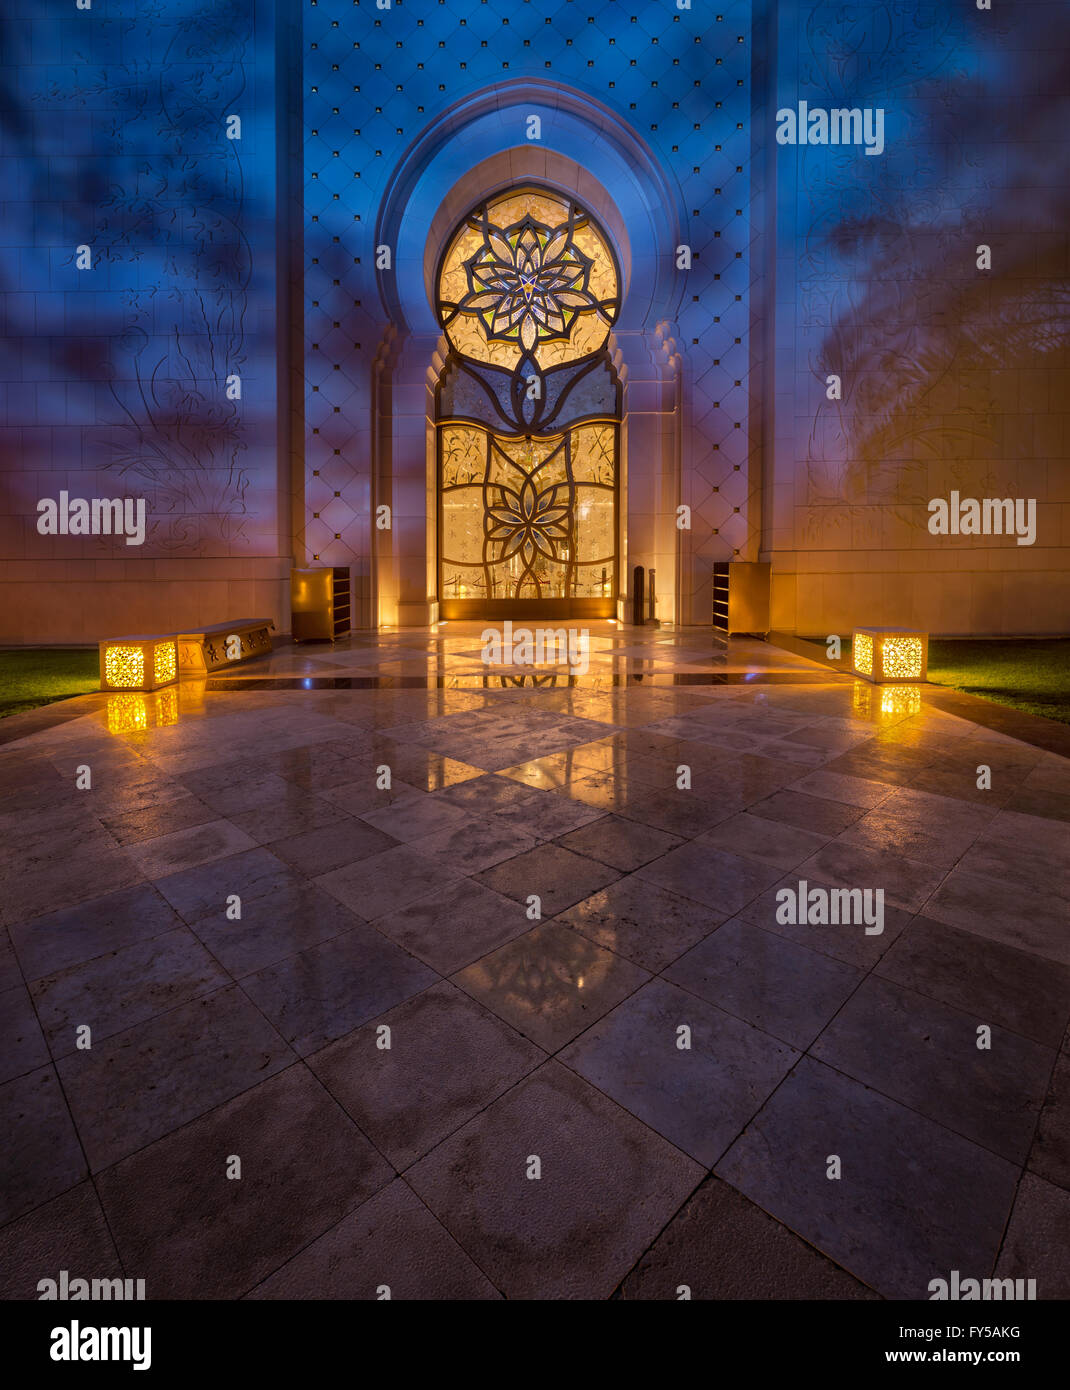 Sheikh Zayed Grand Mosque luxury Gate by night with some beautiful color lights - Stock Image